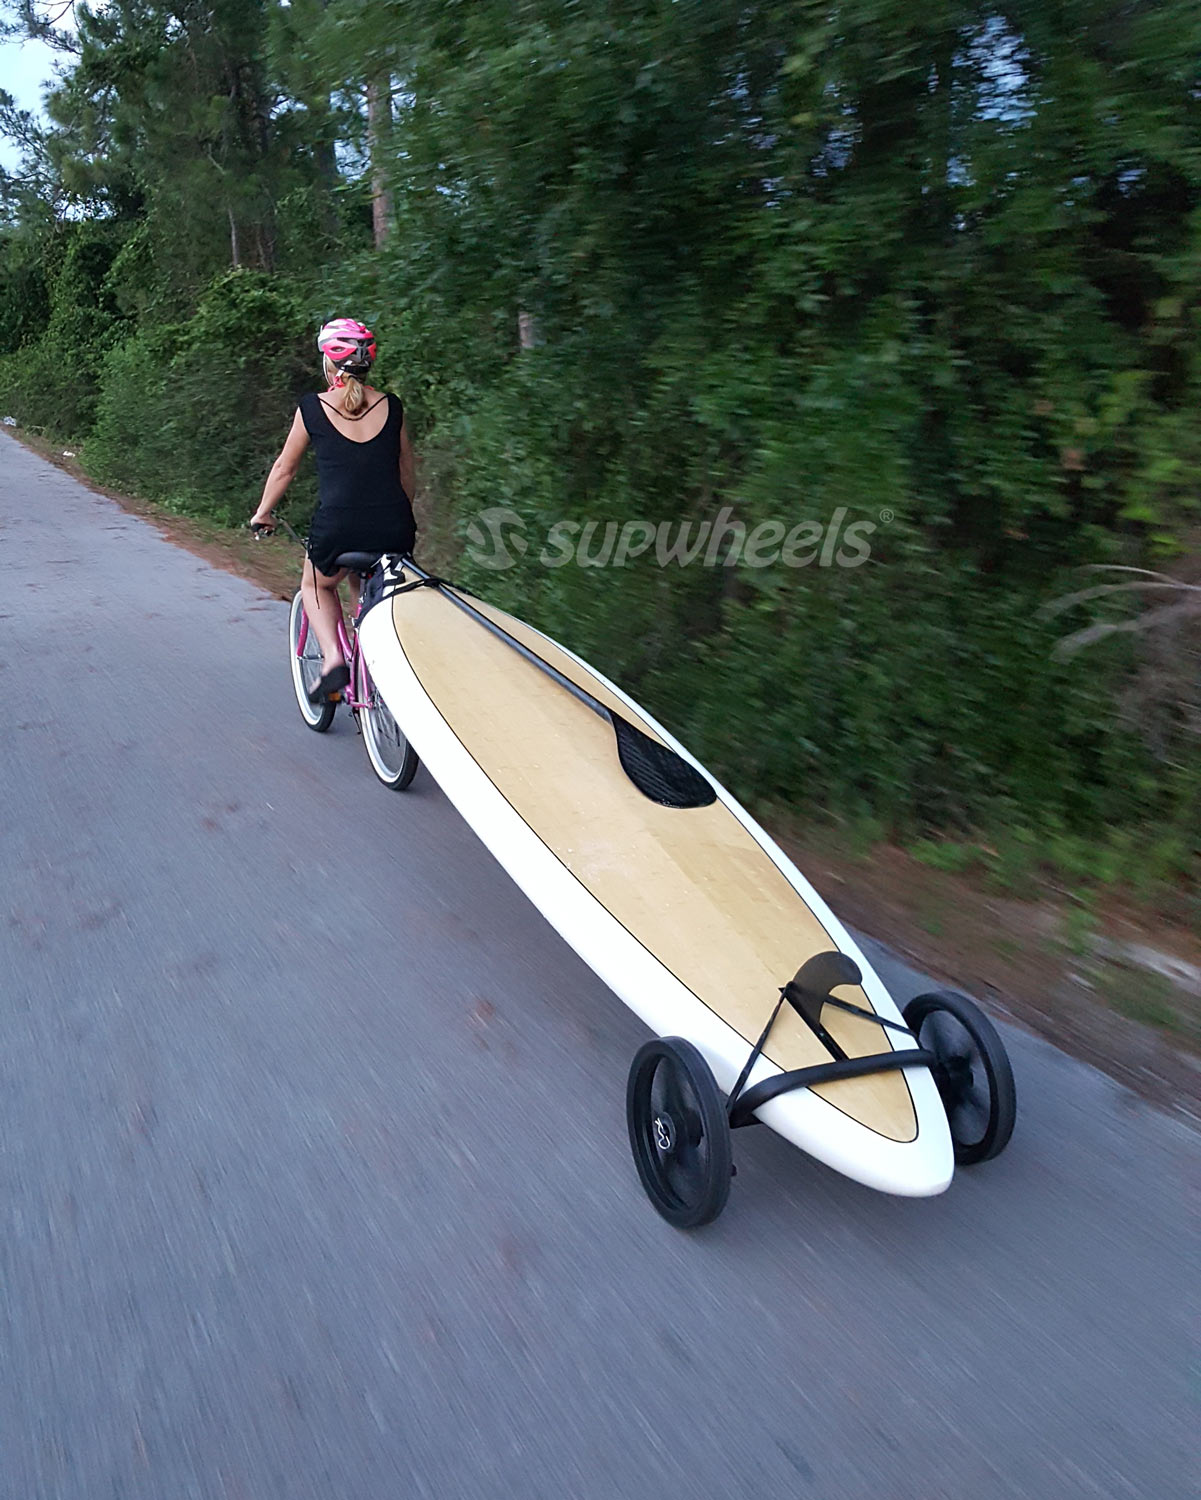 Sup Wheels Evolution Board Bike Trailer